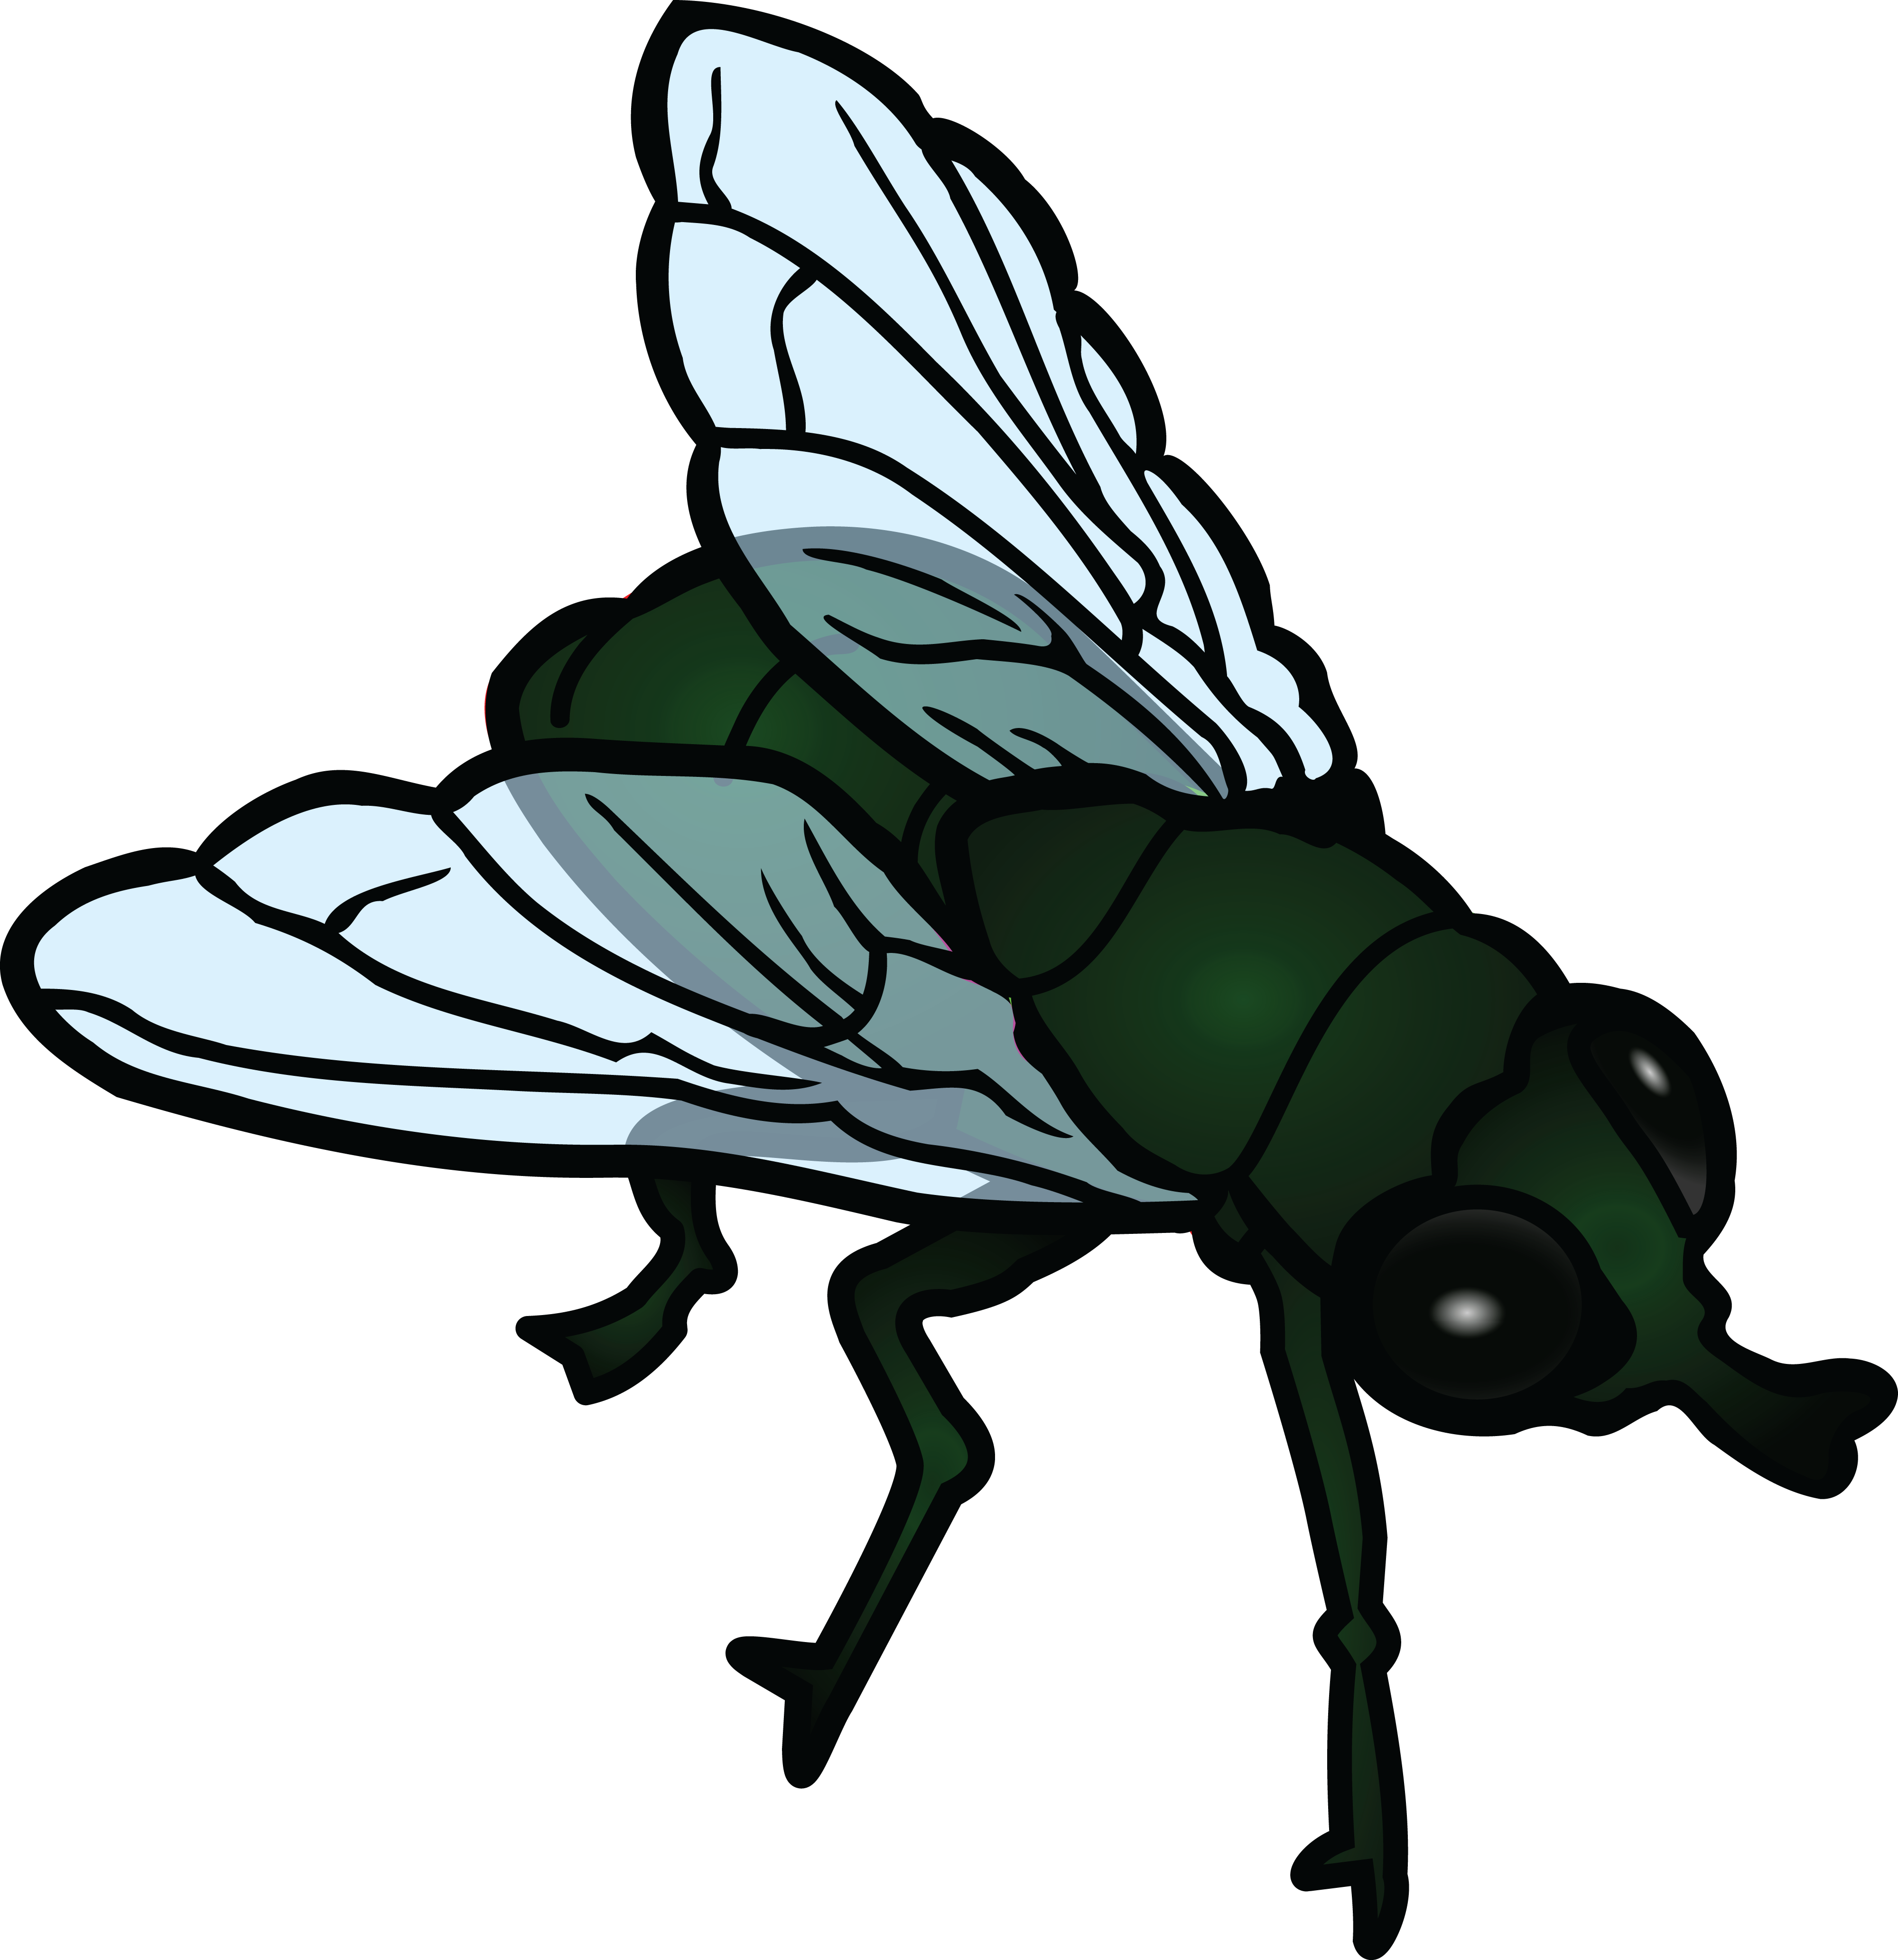 Fly clipart png. Collection of free flies